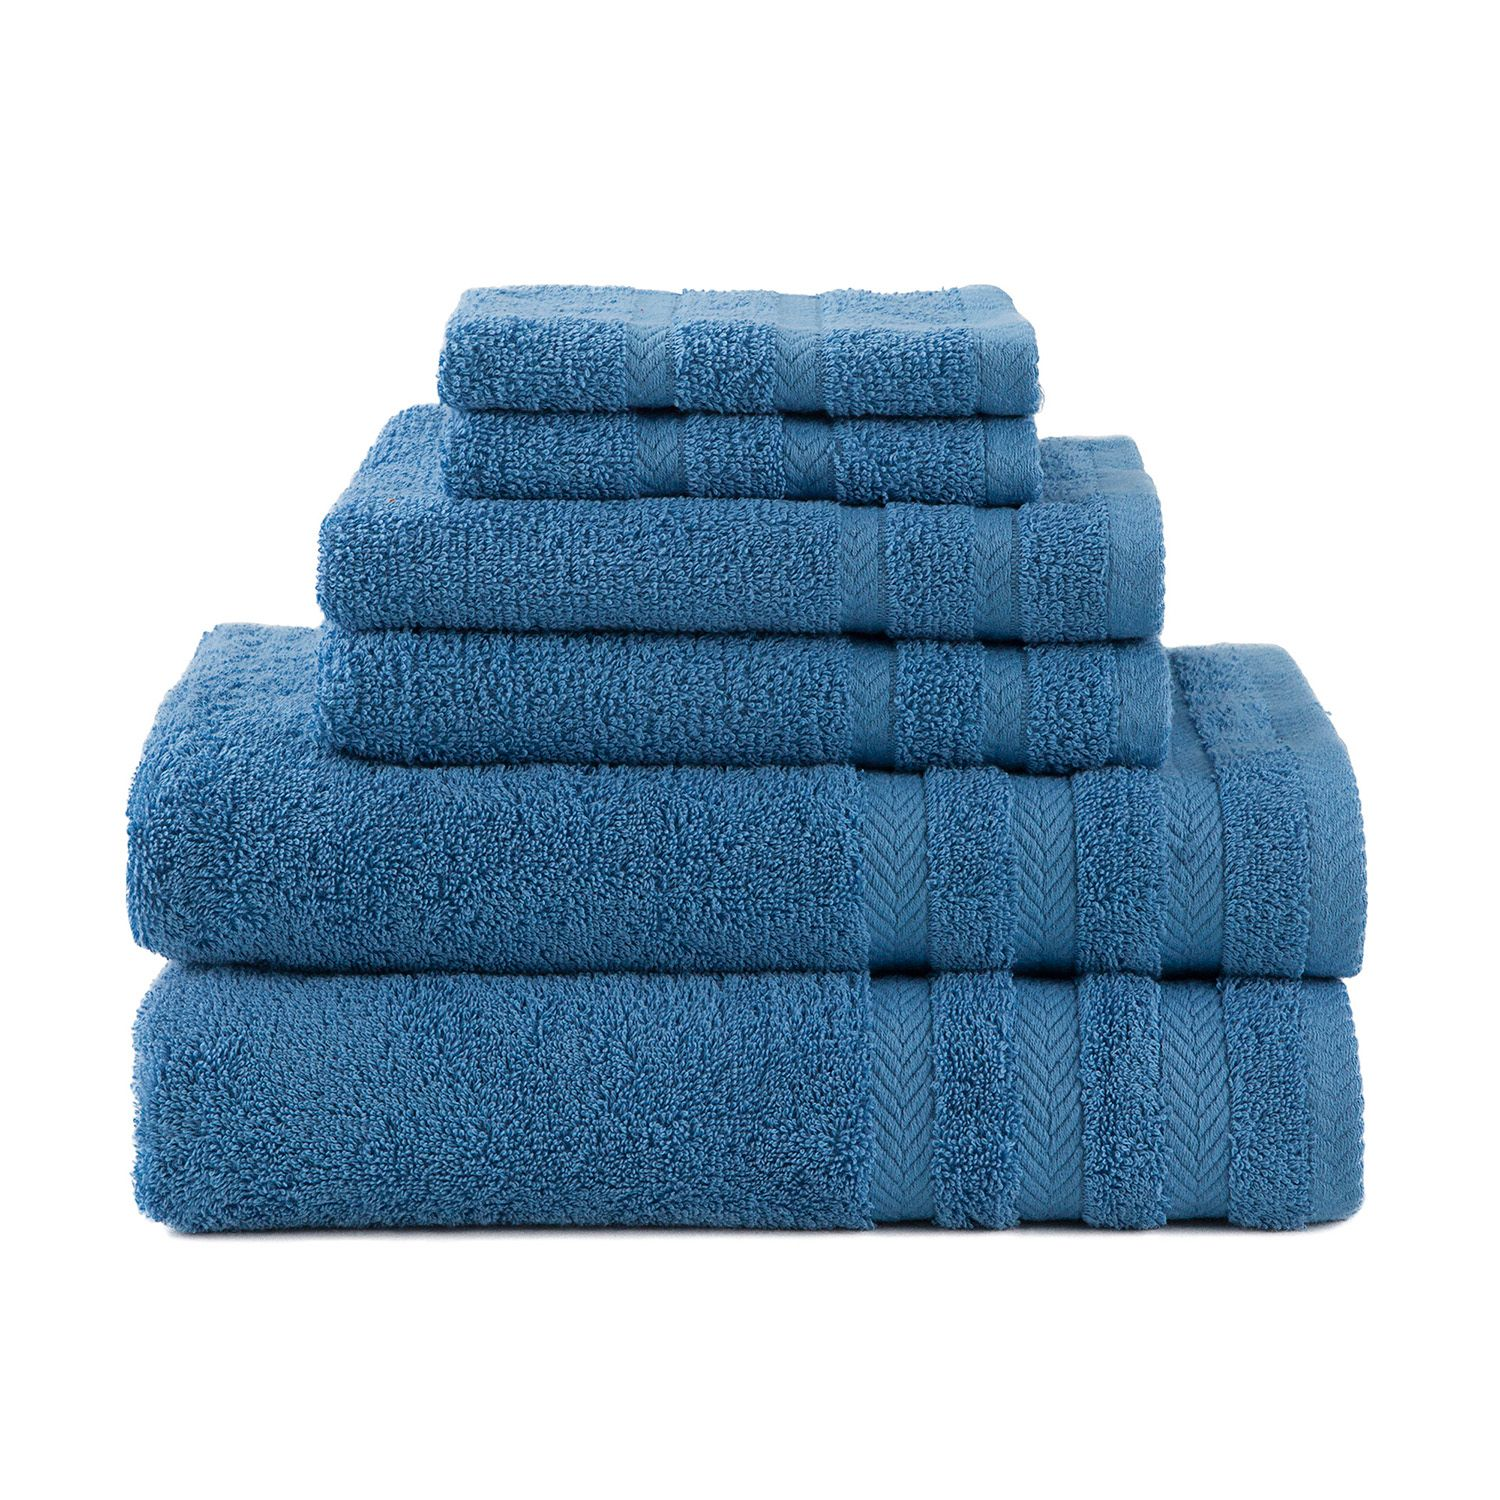 Martex DryFast Egyptian Cotton Bath Towels  sc 1 st  Kohlu0027s & Bath Sheets Bath Towels - Bathroom Bed u0026 Bath | Kohlu0027s